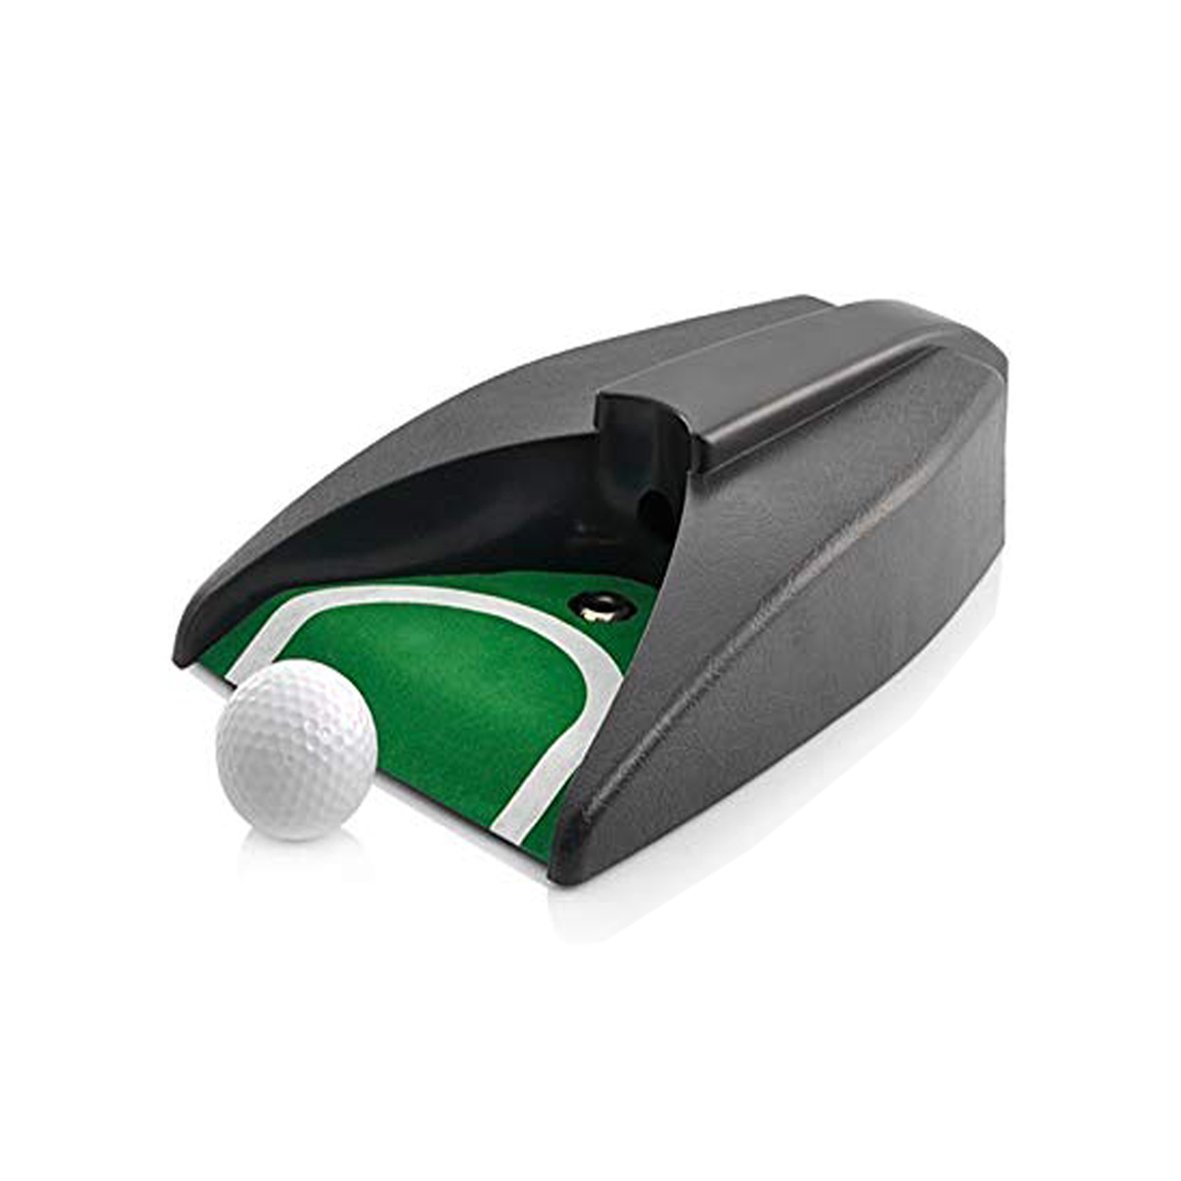 PLAYEAGLE Golf Automatic Putting Cup Indoor Golf Ball Returning Golf Cup Practice Training Aid Golf Practice for Outdoor Yard Office